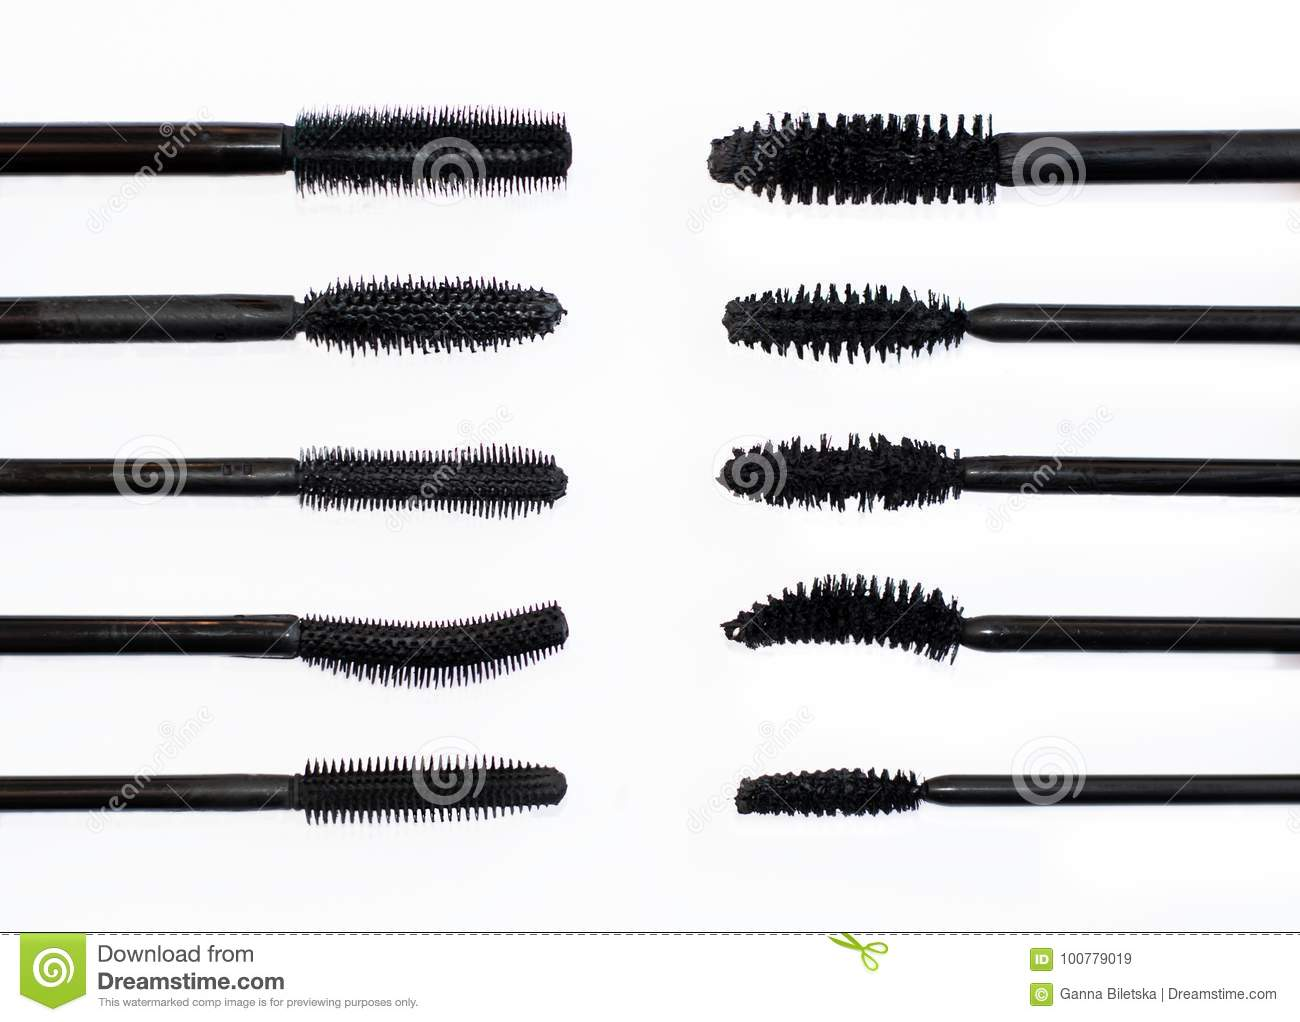 1f5d4f1a235 Silicone brushes for mascara against conventional brushes. Types of brushes  for eyelashes, choice. Brushes for mascara, compare, opposite each other